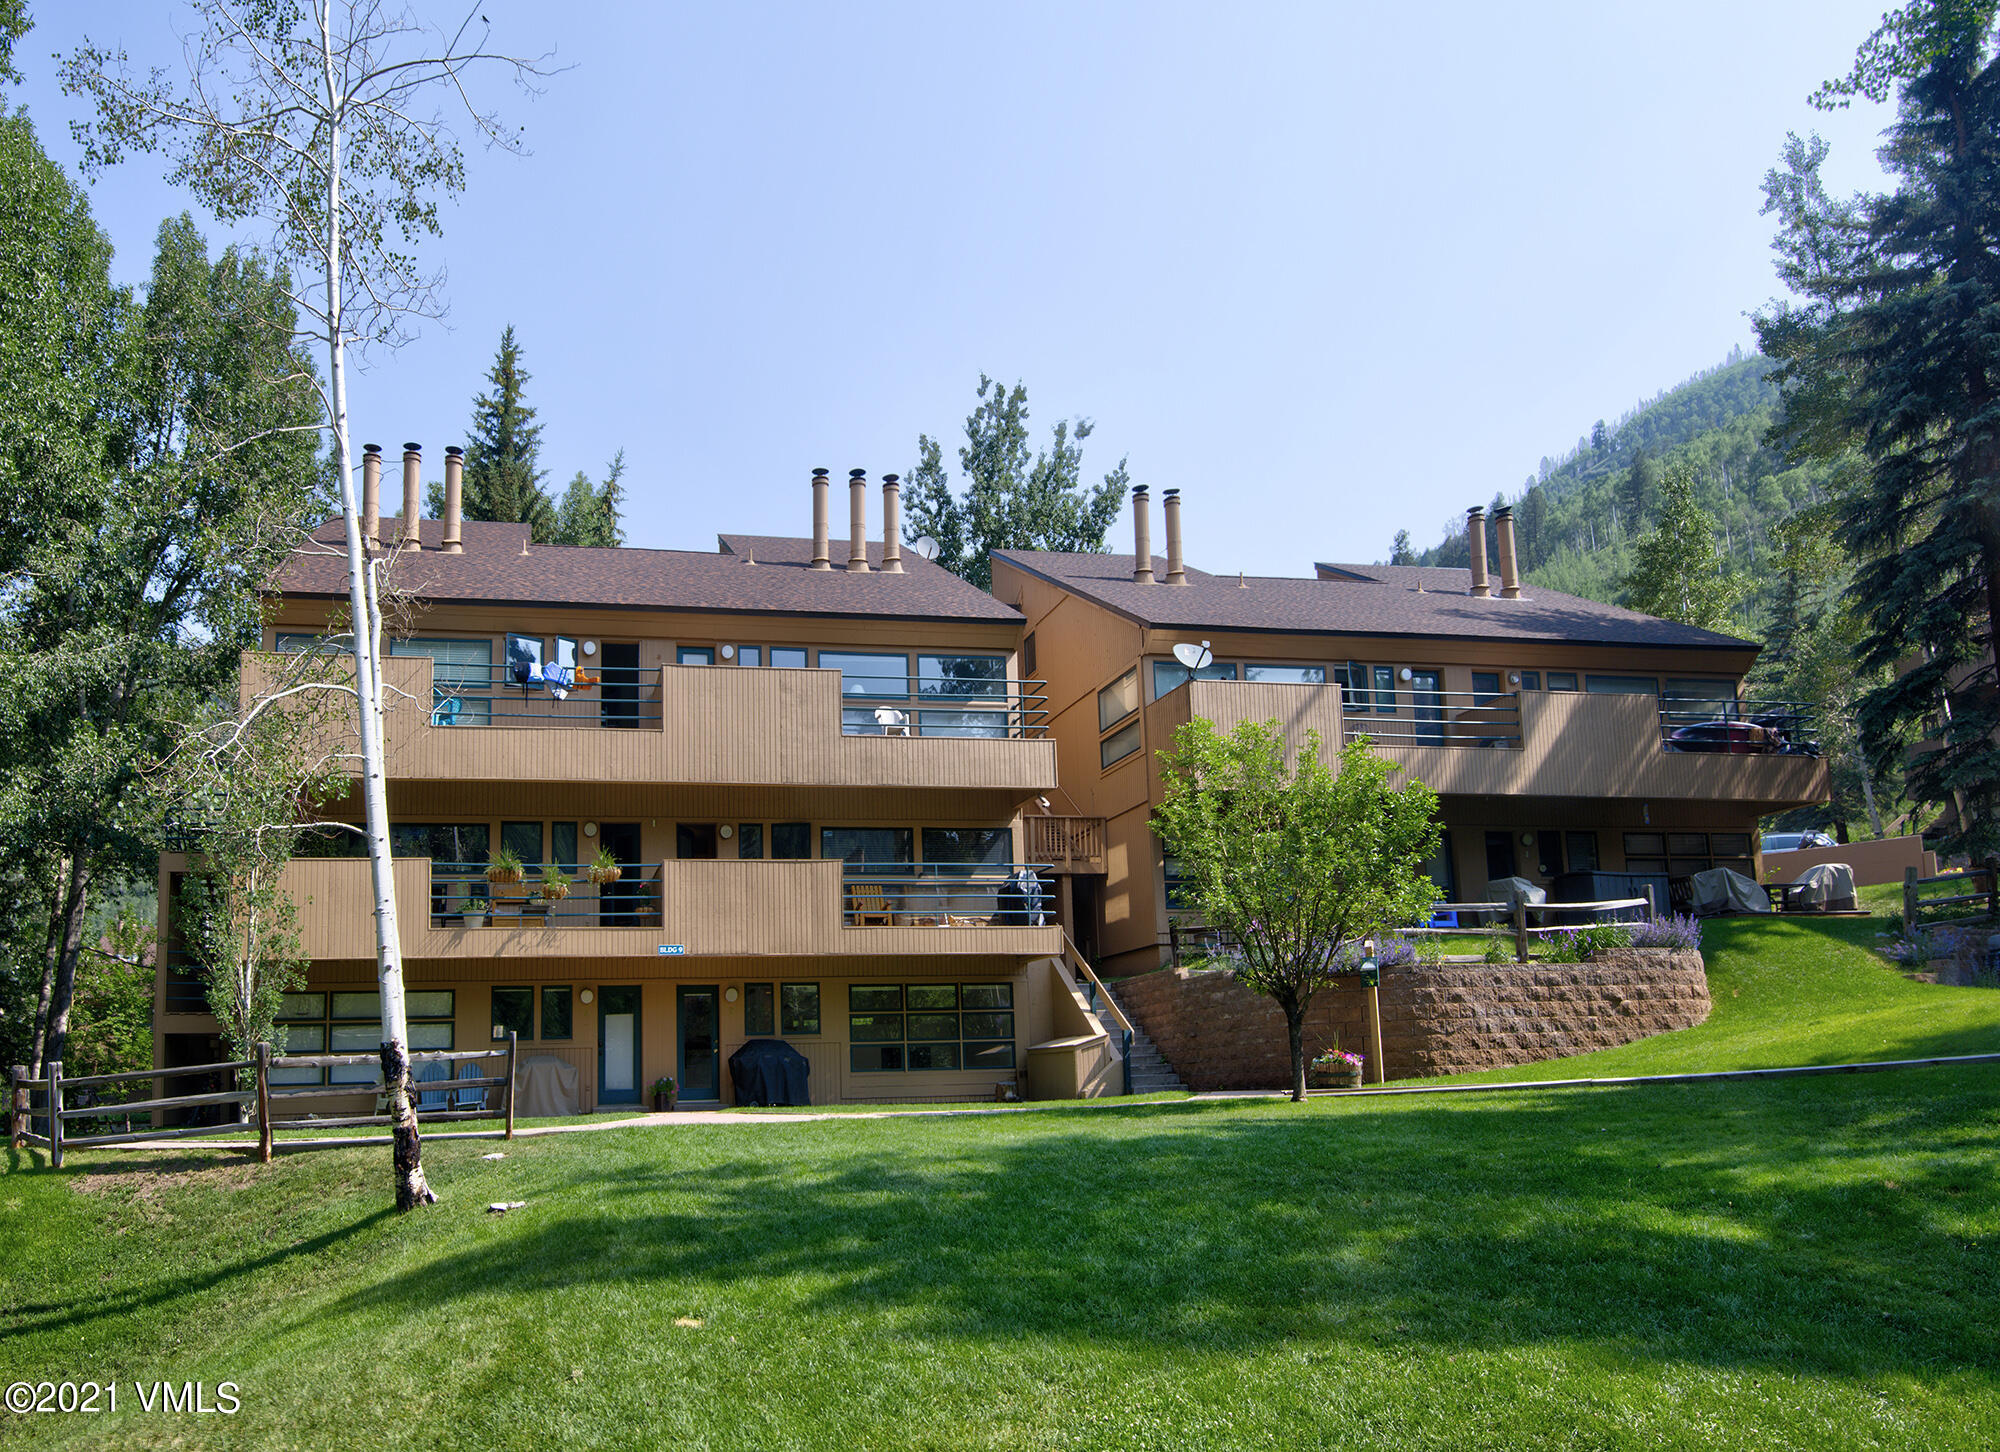 Unique 2 bedroom, 1.75 bath, 905 sq ft Pitkin unit with green space views from all windows, Newer blinds, new Washer/Dryer, Baths remodeled in 2020.  Quiet, south-facing living room.  Pool, hot tub , liquor and grocery store on premises.  On Town free bus route, 4 miles to Vail lifts.  Easy access to bike path and hiking trails.  Well run HOA with ongoing maintenance plan.  Kitchen needs updating as it has original cabinetry and counters.  HOA allows only one pet per owner.  Easy to rent out.  Great candidate for Vail Indeed program grant monies.  Seller is licensed broker in the state of Colorado.